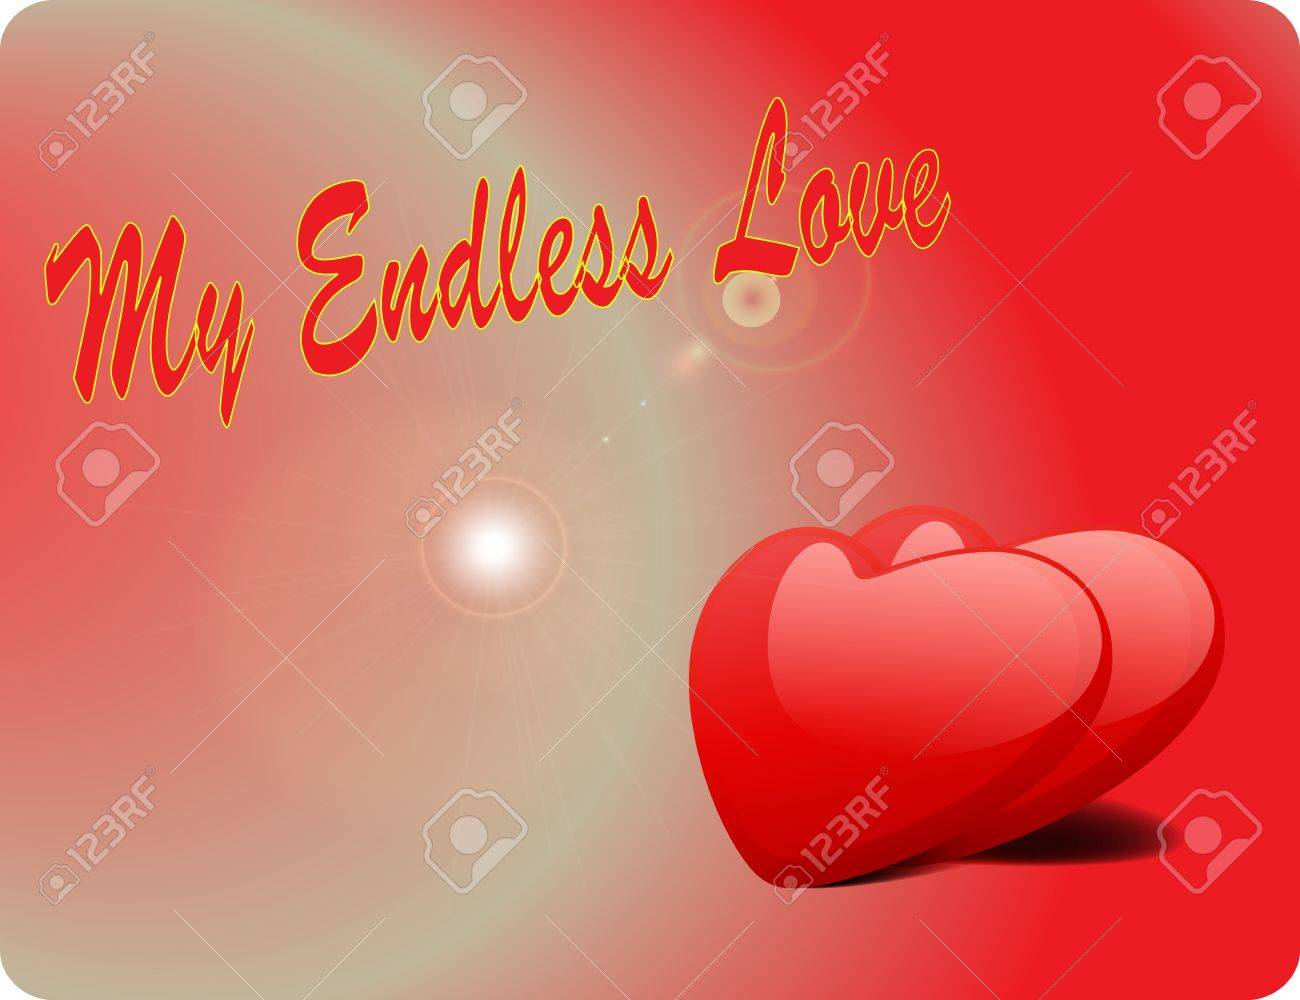 Valentine Love Card - My Endless Love Stock Vector - 17005327